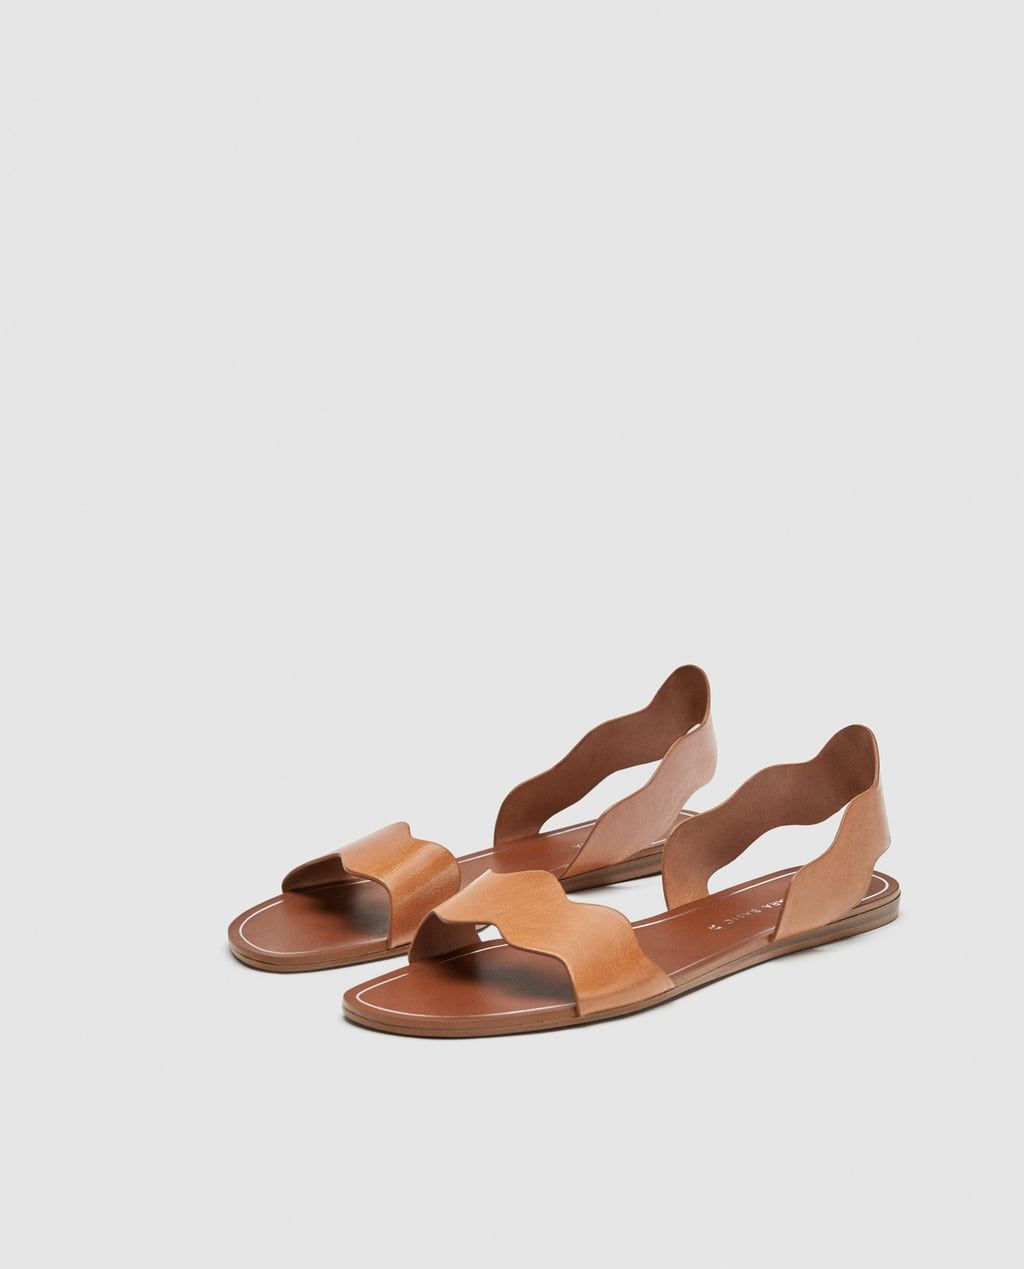 481734fb5b9af3 Image 4 of LEATHER SLIDES WITH WAVY STRAPS from Zara